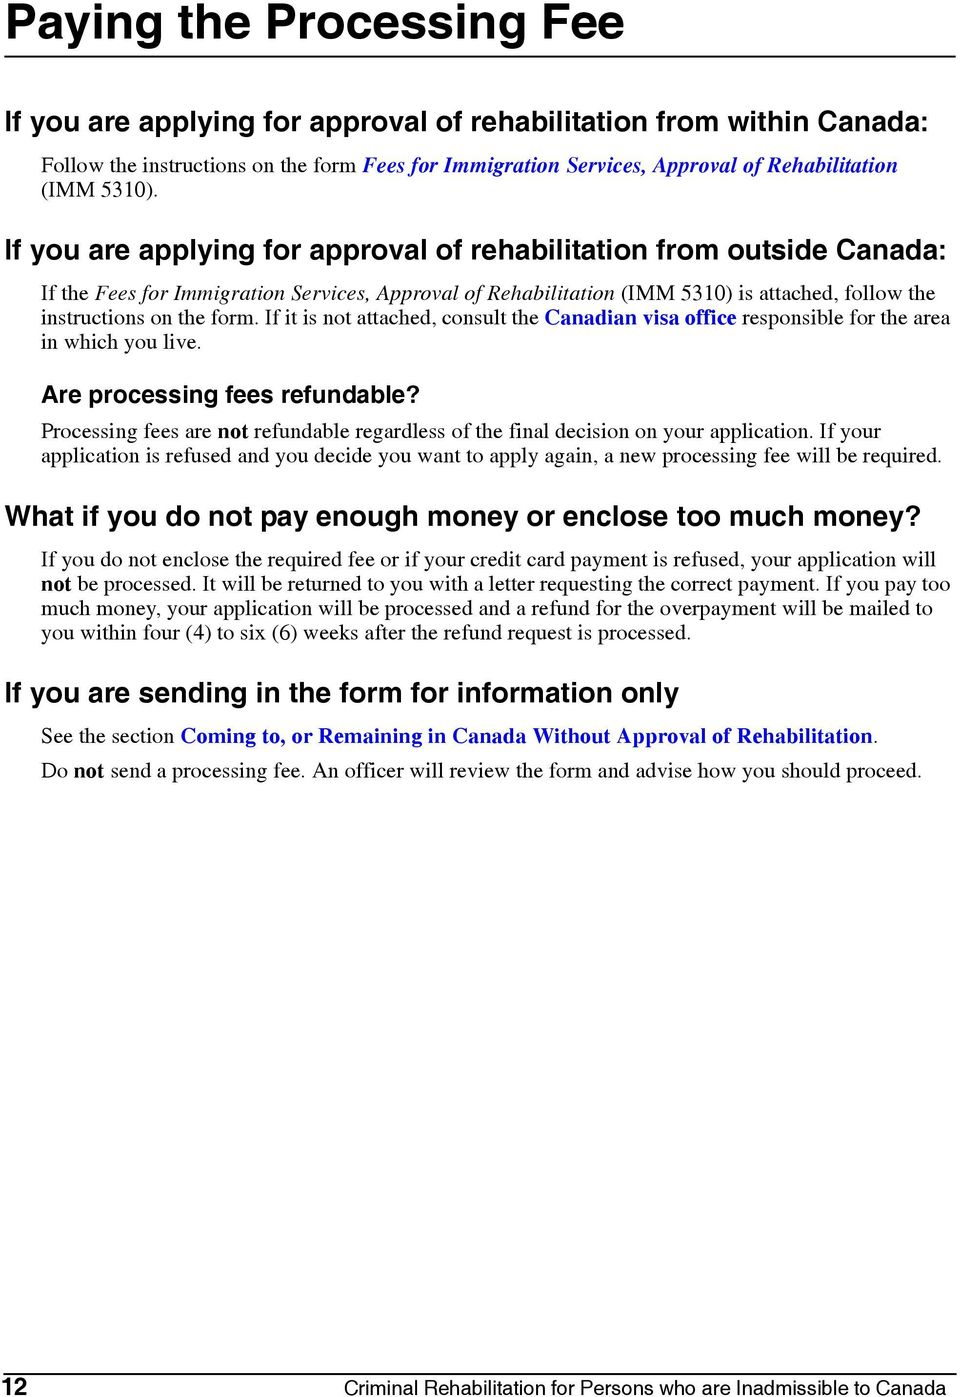 If you are applying for approval of rehabilitation from outside Canada: If the Fees for Immigration Services, Approval of Rehabilitation (IMM 5310) is attached, follow the instructions on the form.